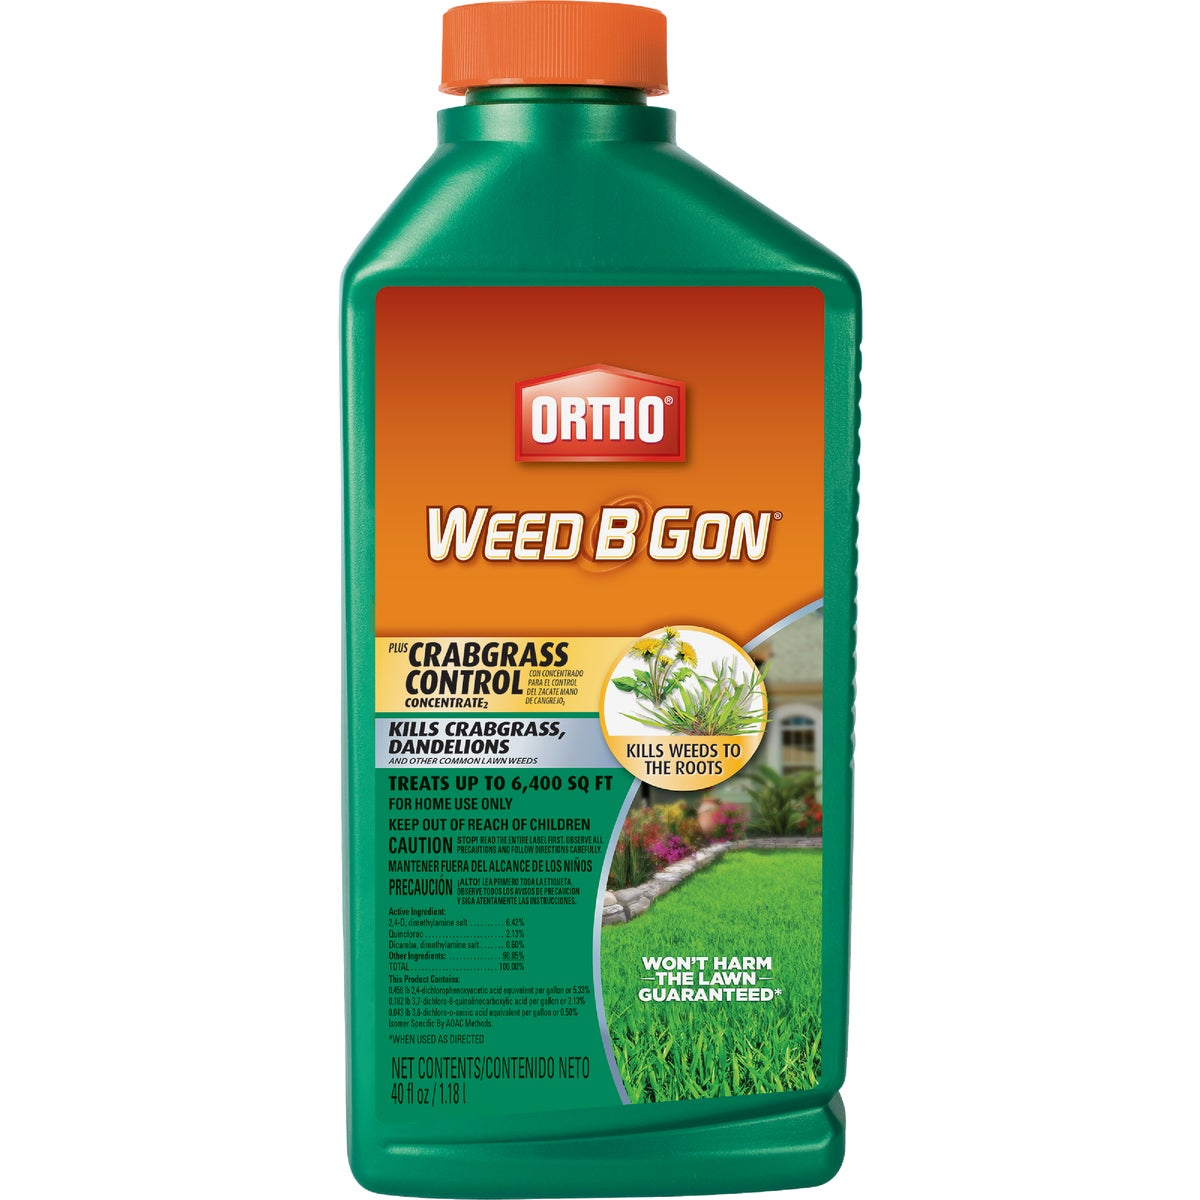 Ortho Weed B Gon Max Plus Crabgrass Control Crabgrass & Weed Killer